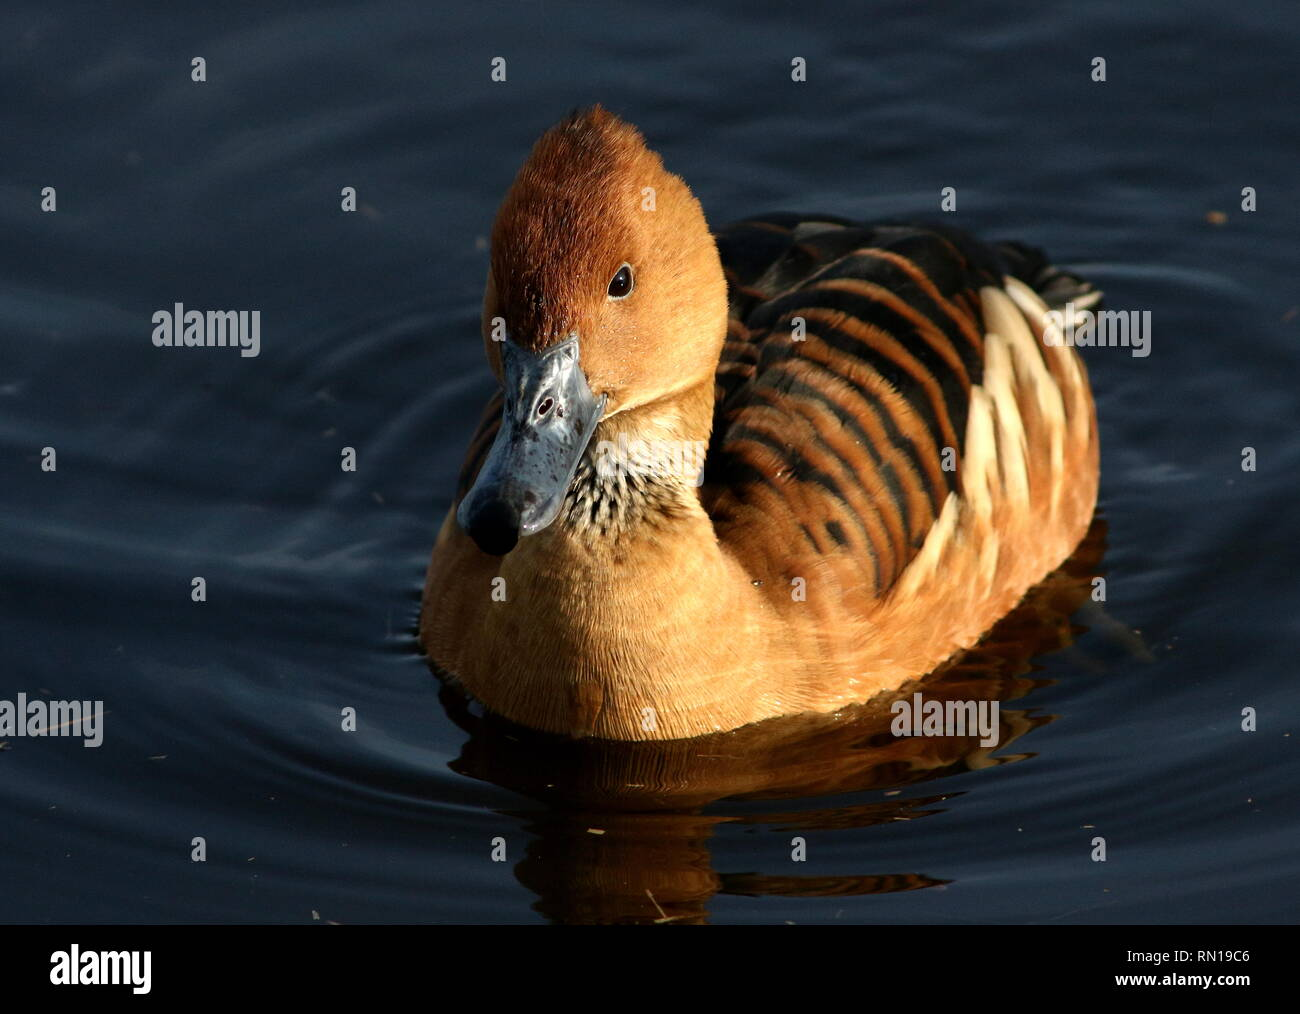 Swimming Fulvous whistling duck (Dendrocygna bicolor) - Native to Tropical South America, Caribbean, East Africa and India Stock Photo